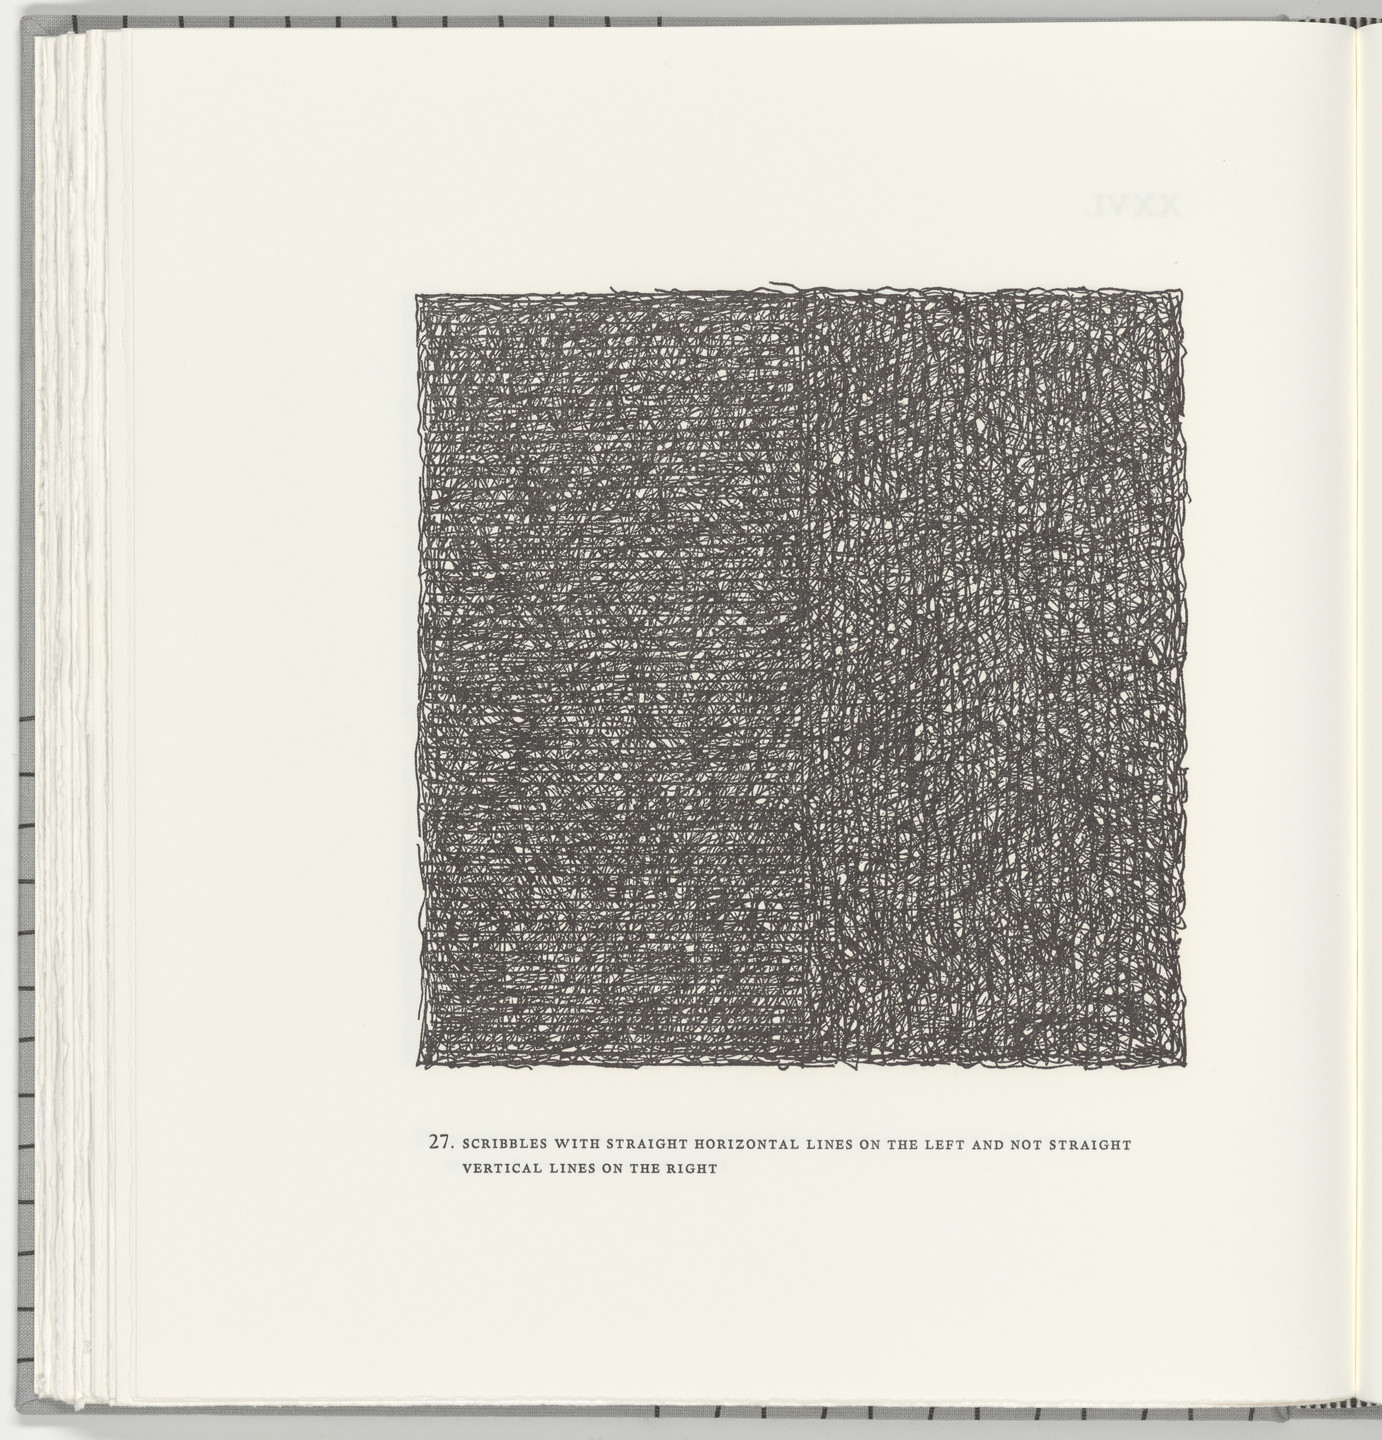 Sol LeWitt. Scribbles with Straight Horizontal Lines on the Left and Not Straight Vertical Lines on the Right (plate 27) from Squarings. 2003